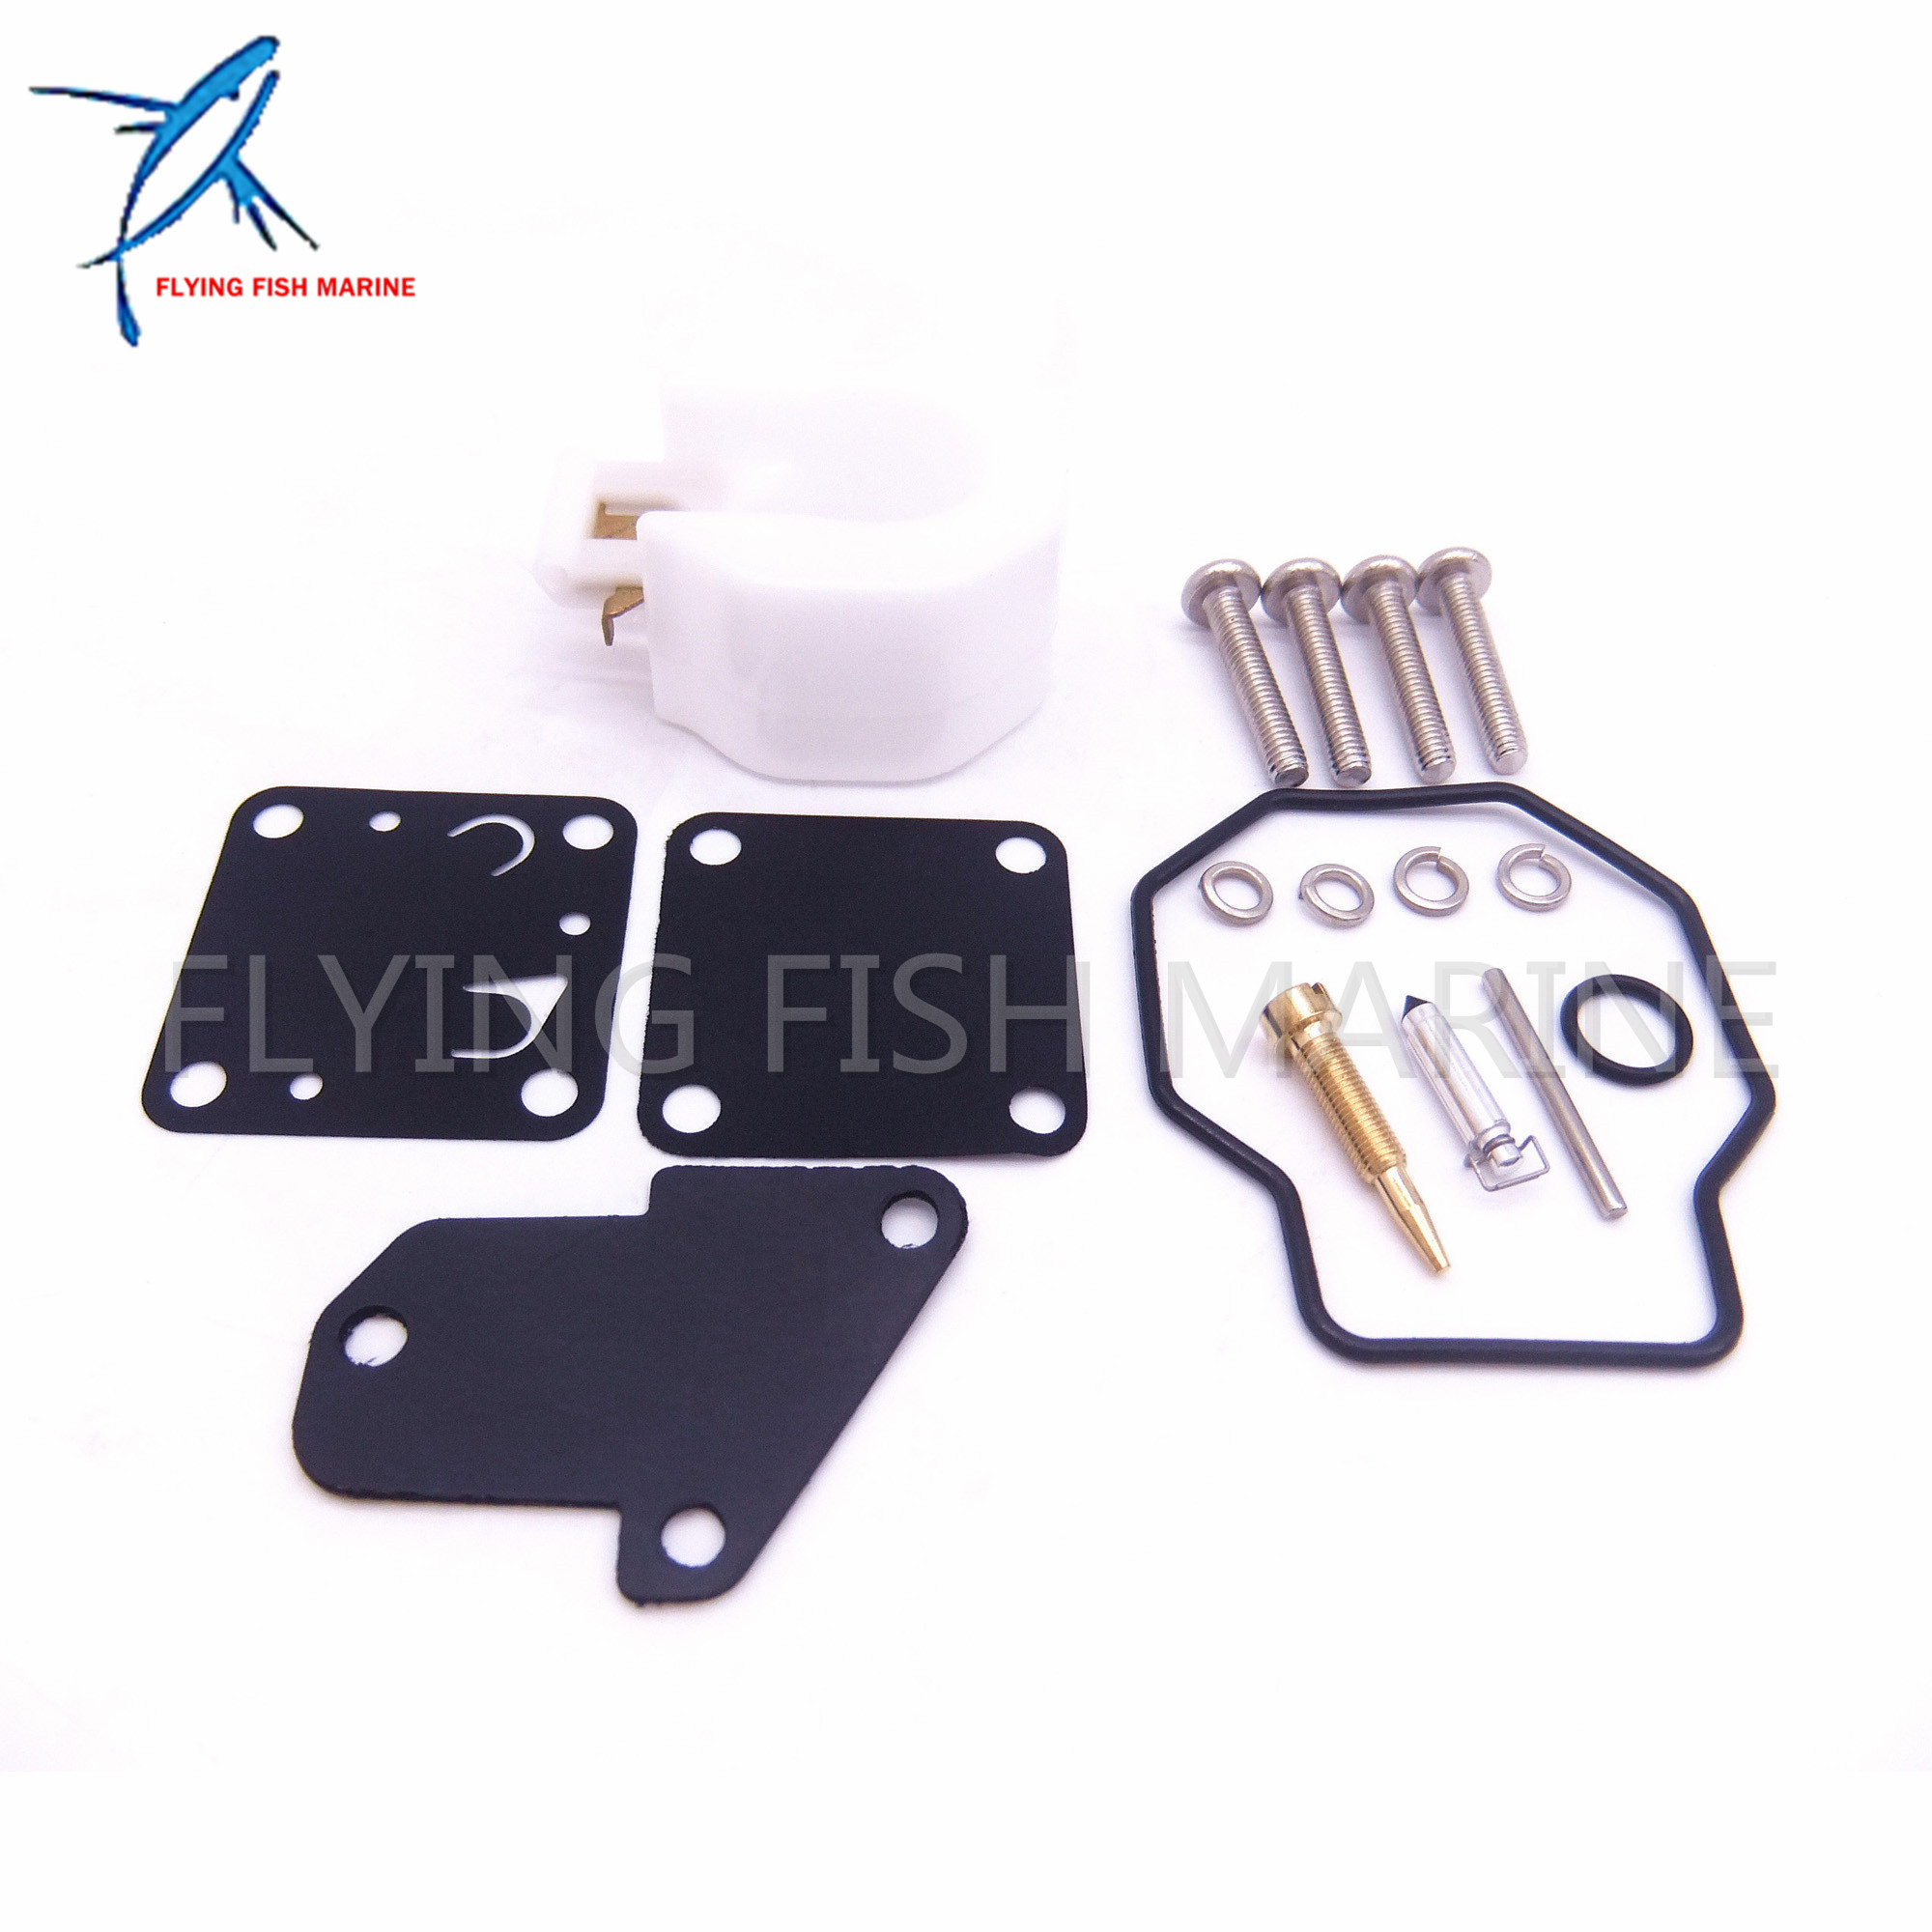 6E3 W0093 Boat Motor Carburetor Repair Kit for Yamaha Outboard Motor 4HP 5HP 4M 5M